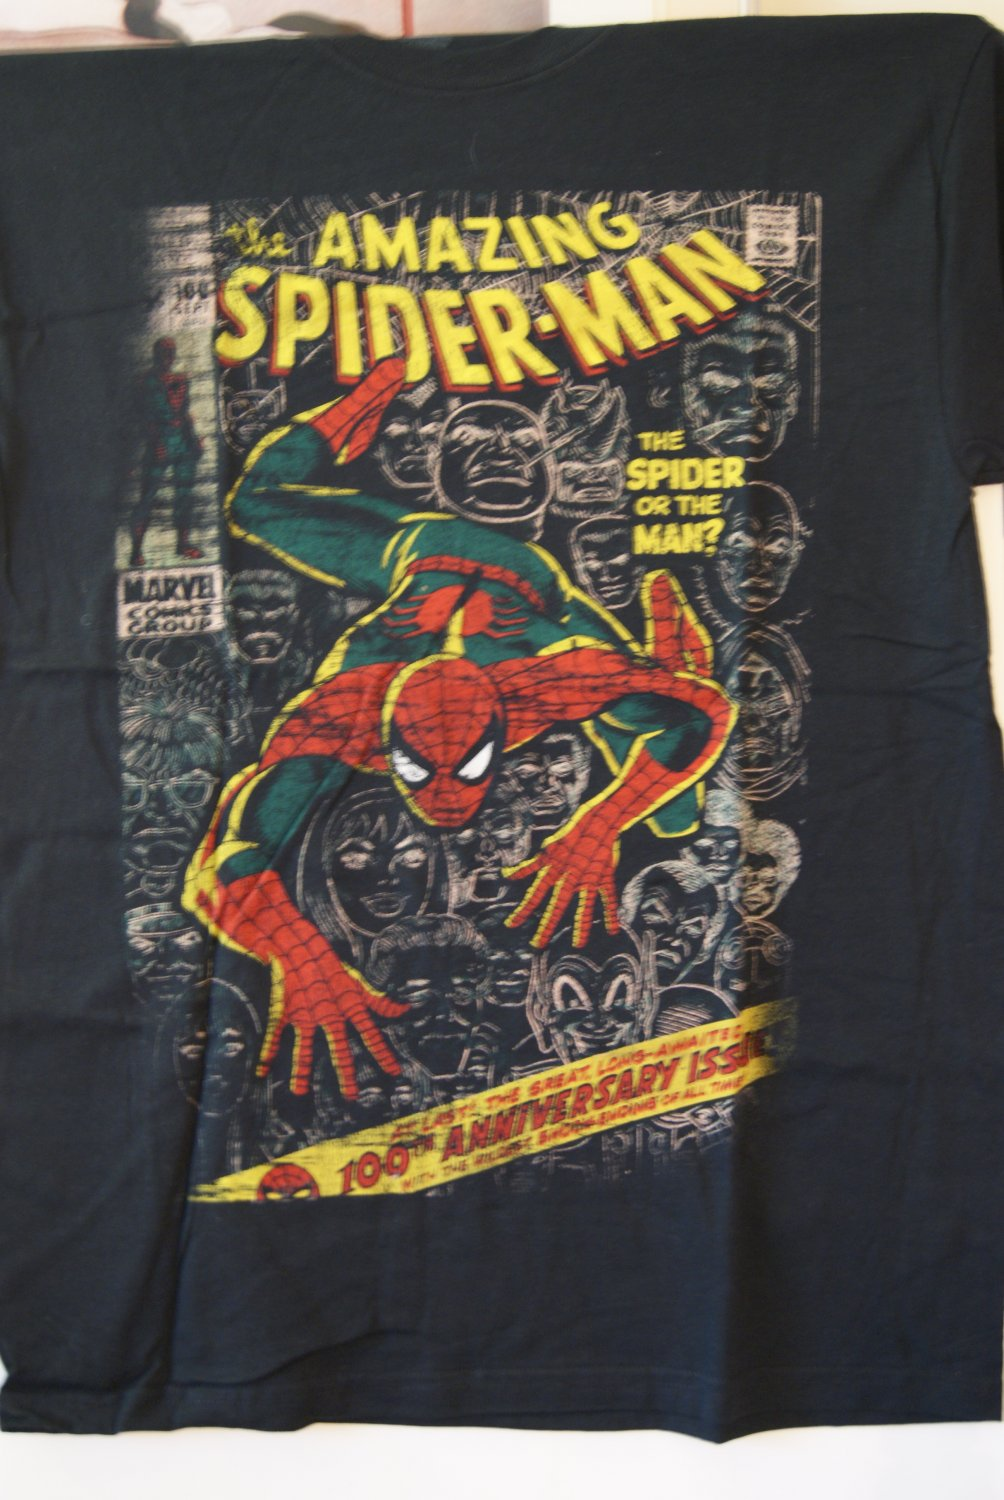 Spiderman tee / comic cover